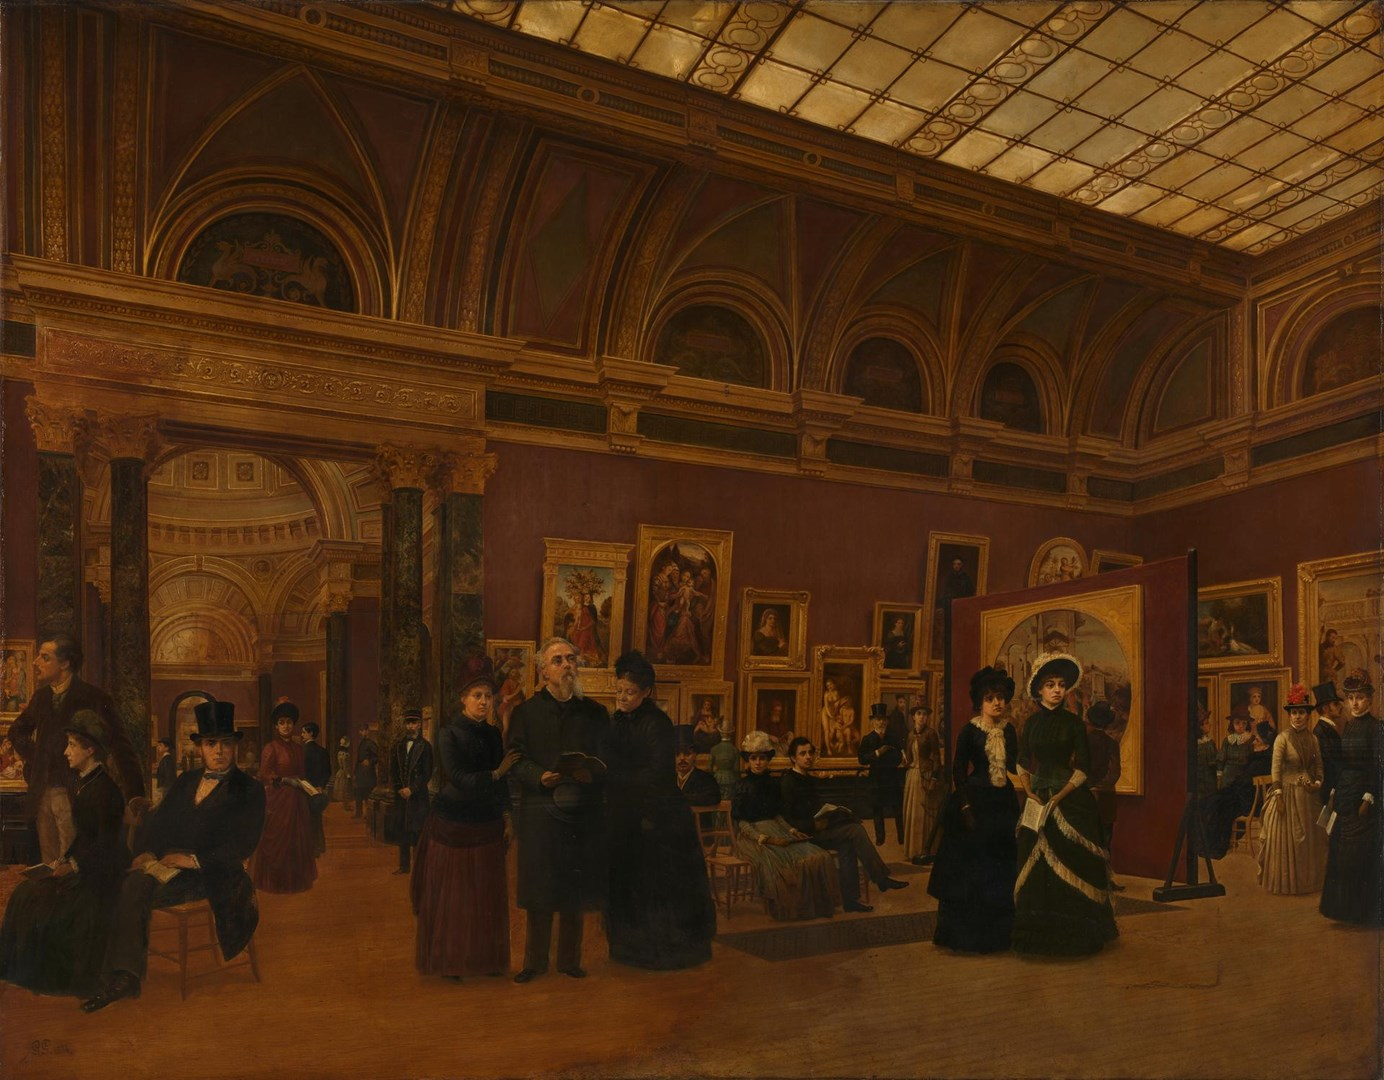 The National Gallery 1886, Interior of Room 32 by Giuseppe Gabrielli